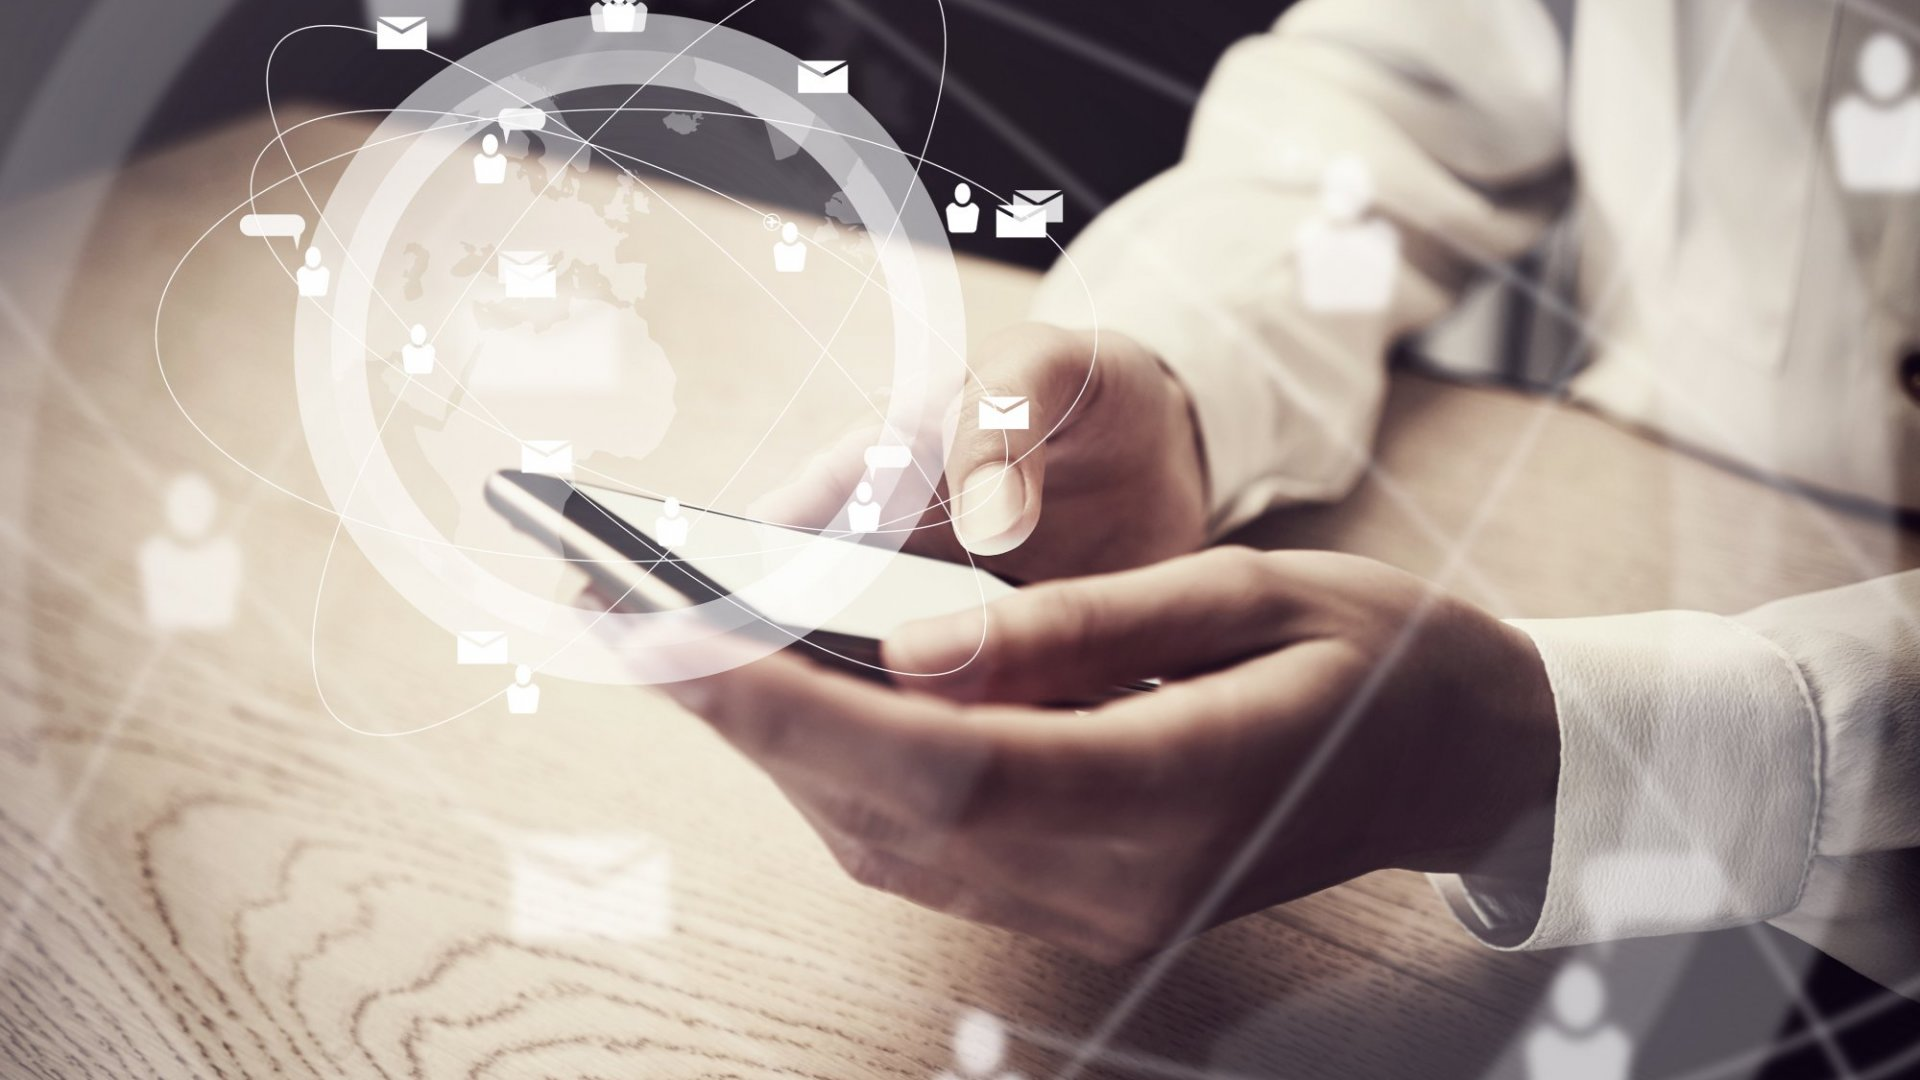 3 Ways Real-Time Personalization Is Taking Apps to the Next Level